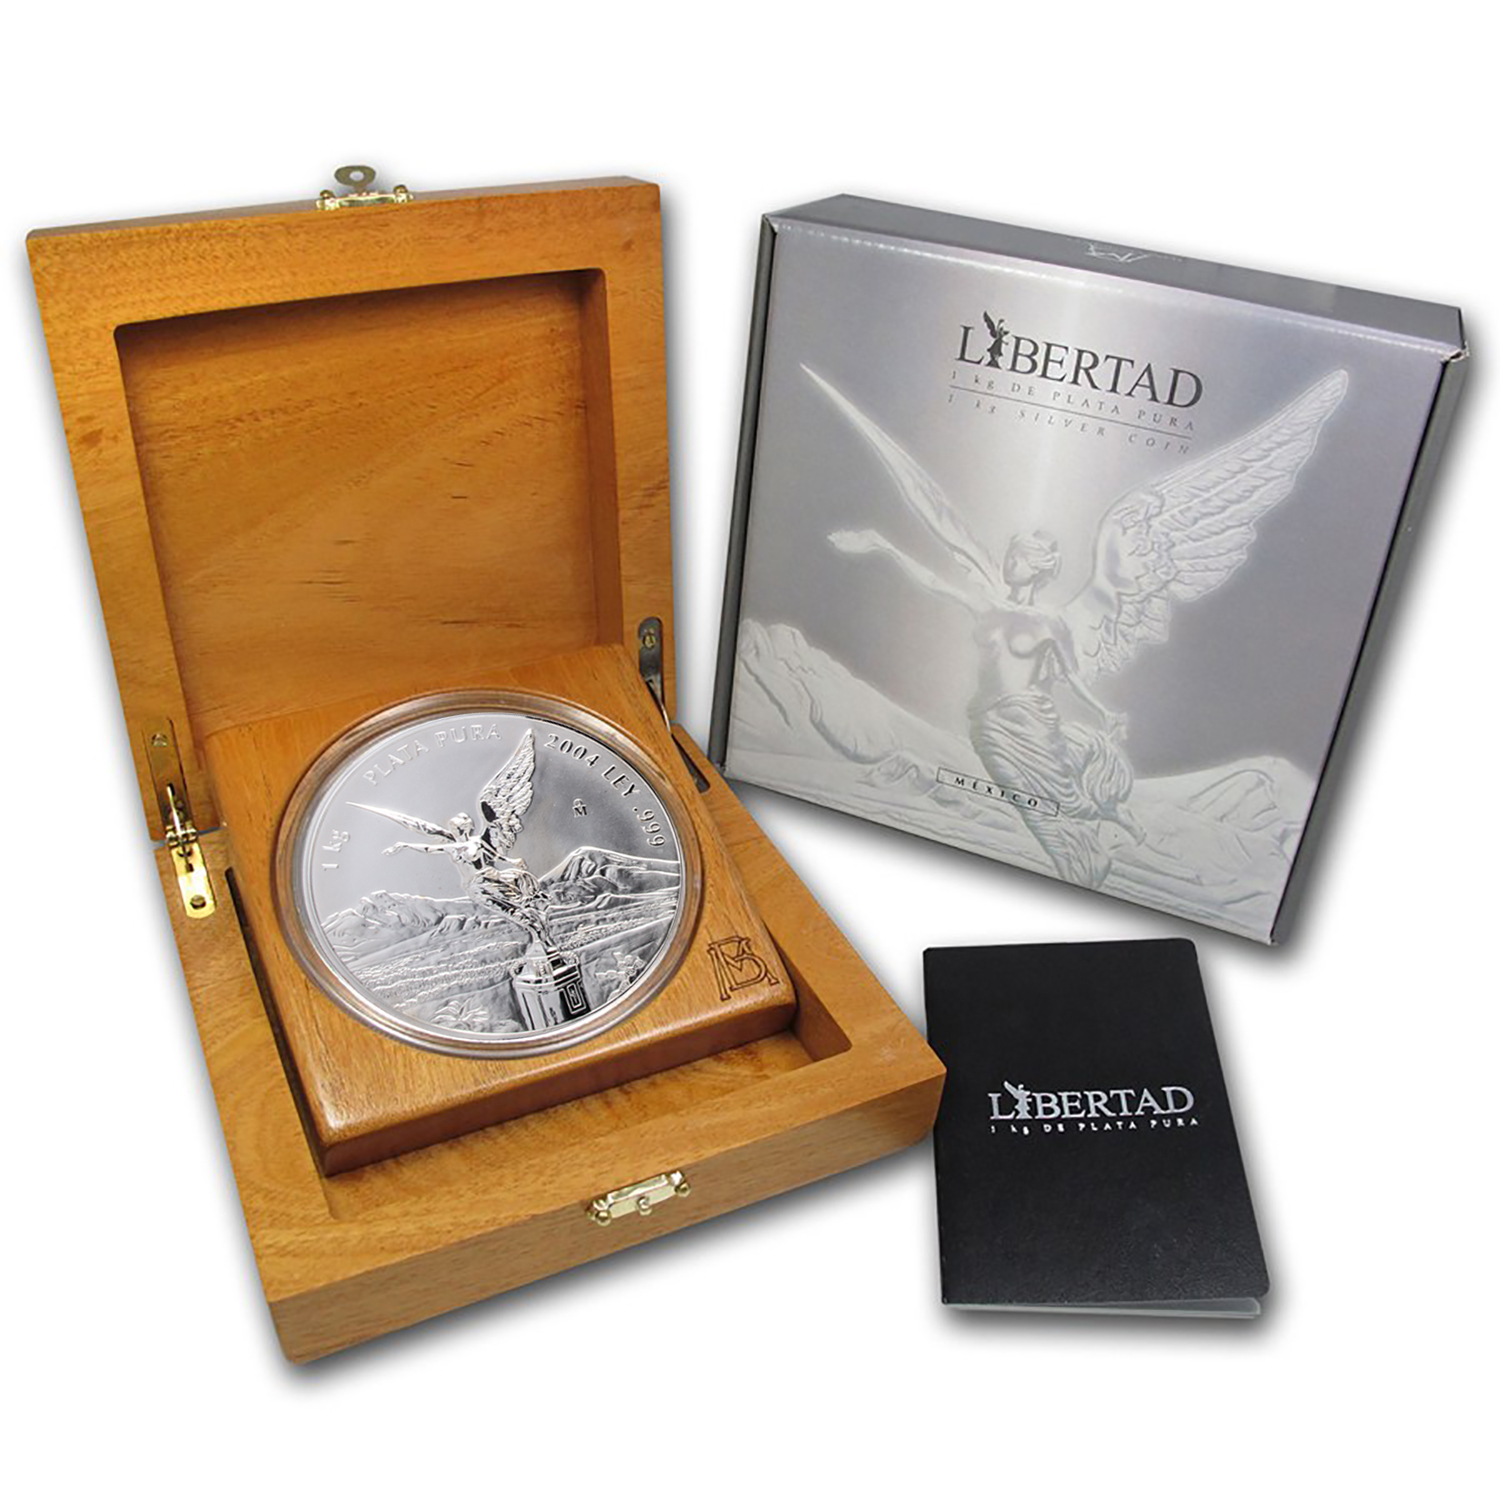 2004 32.15 oz Kilo Silver Libertad Proof Like - (w/ Box & CoA)